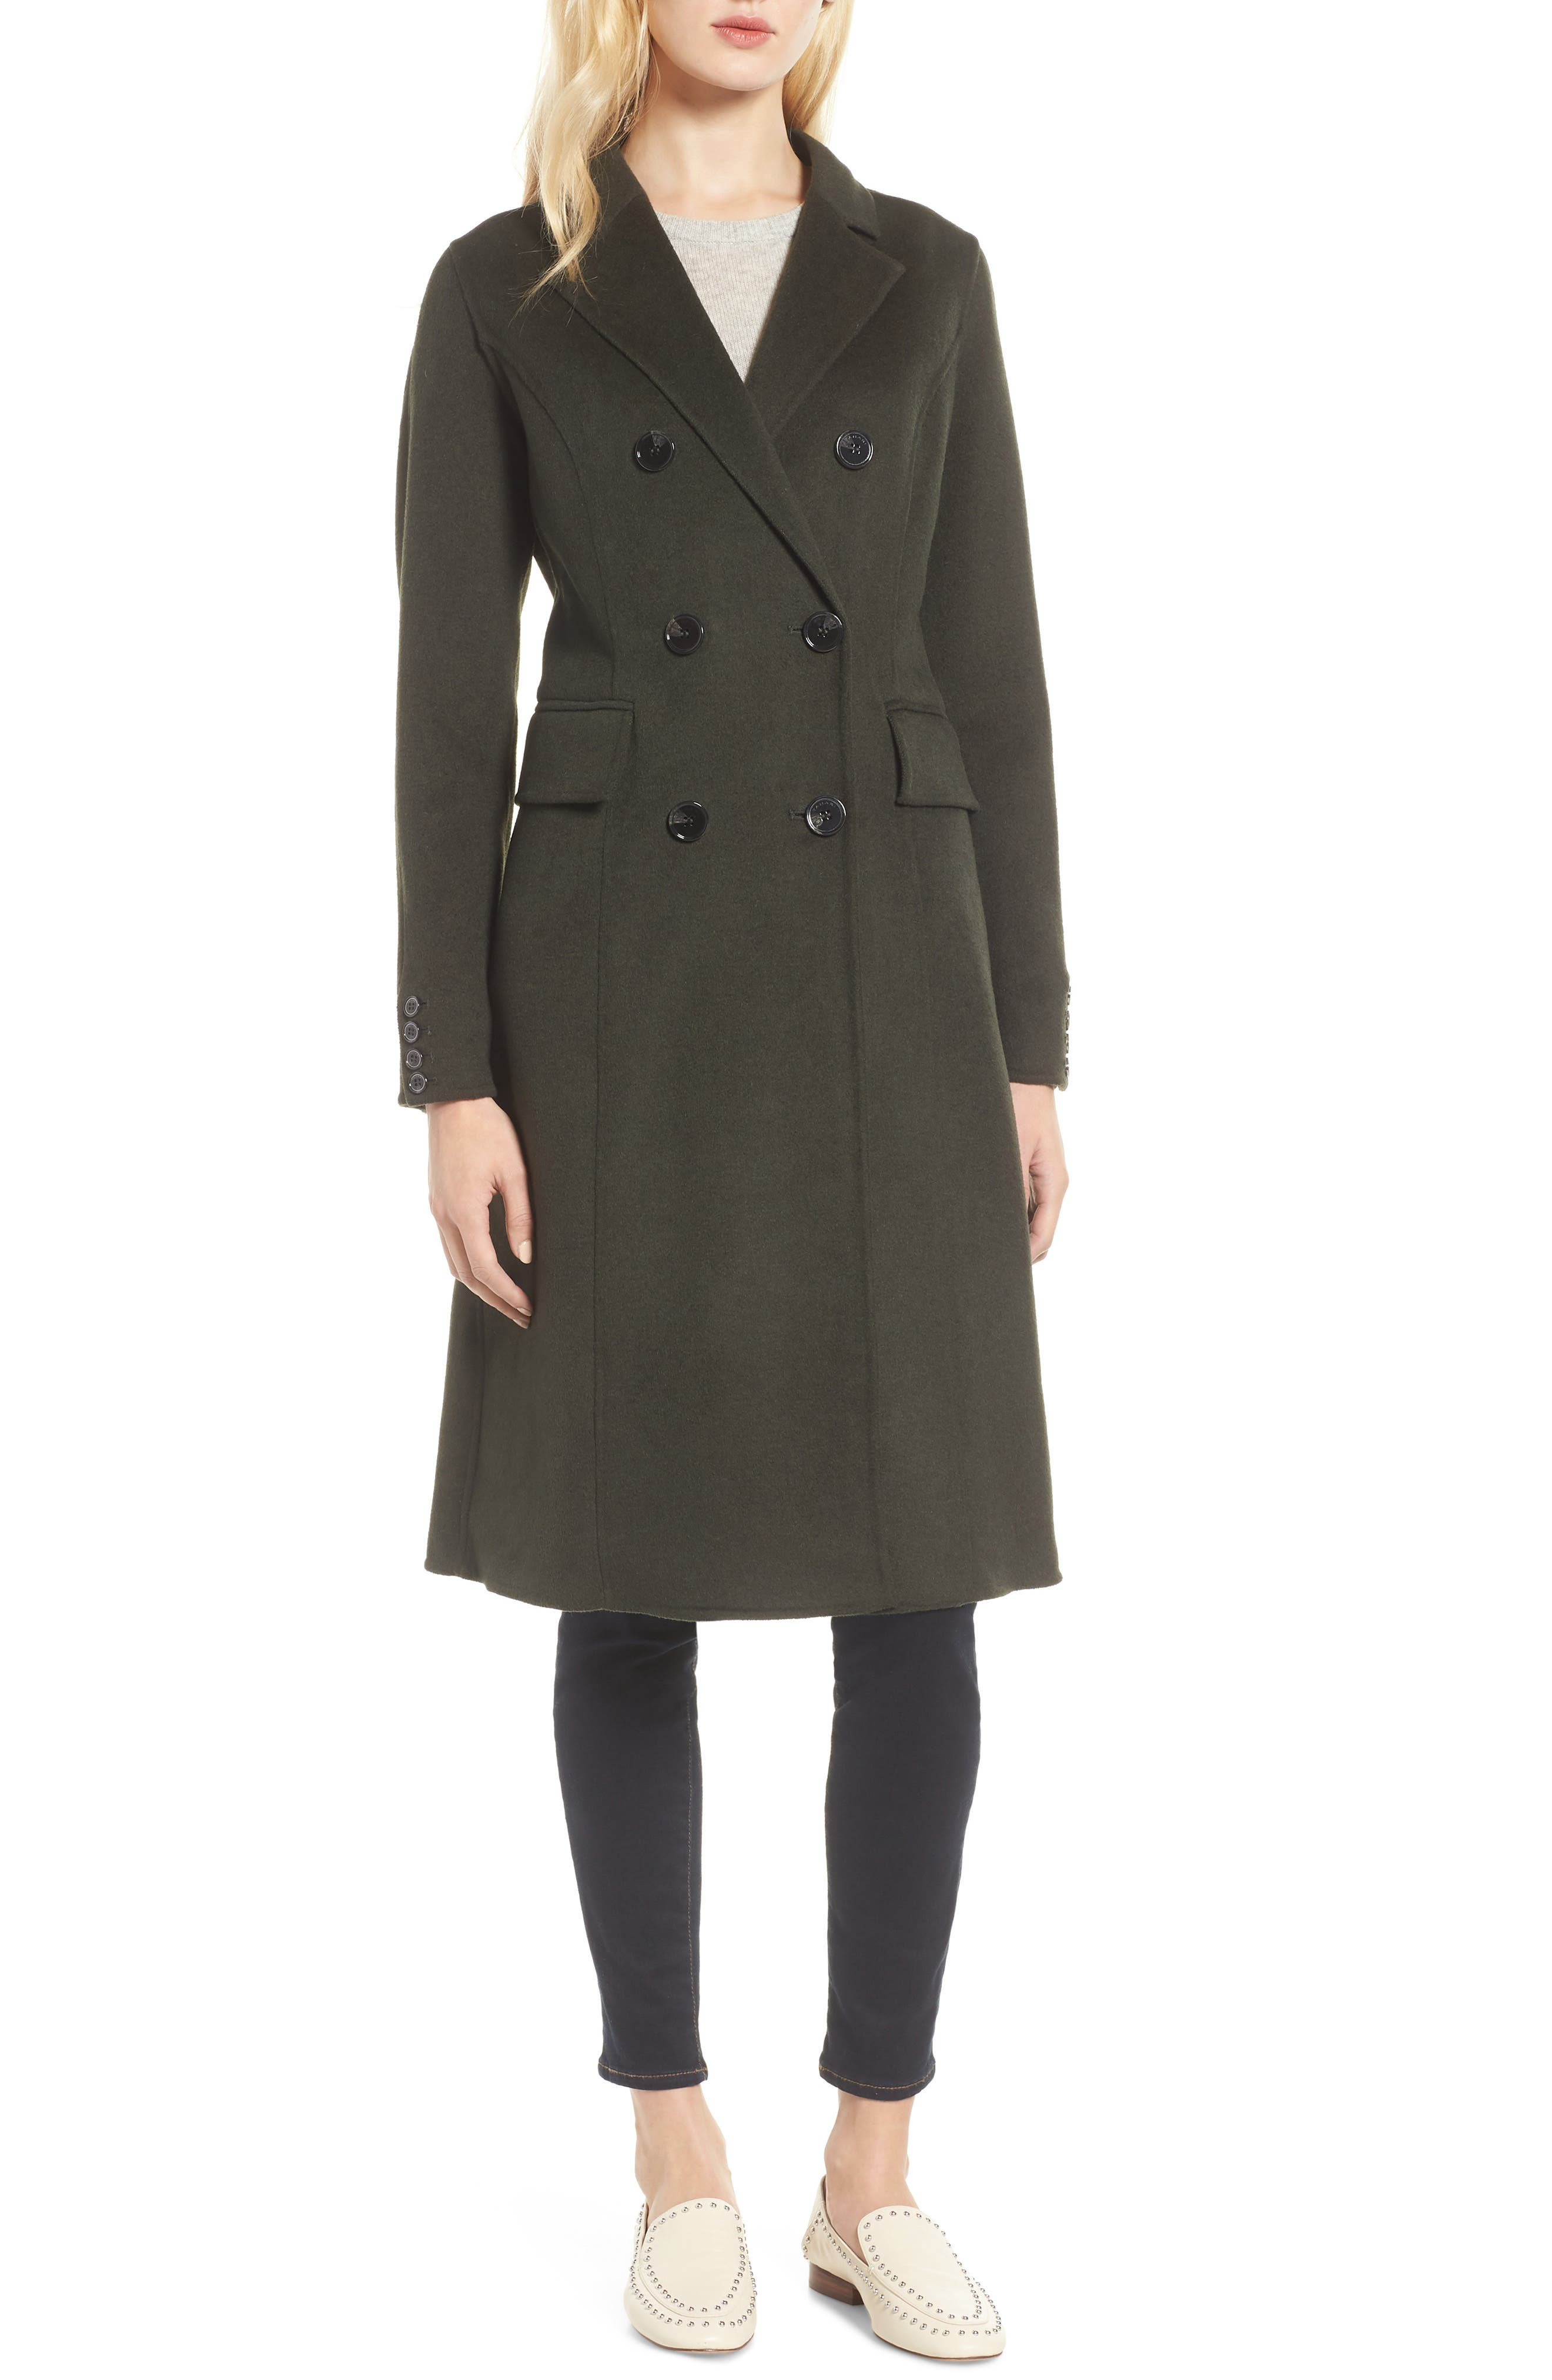 Taylor Double Breasted Wool Coat,                             Main thumbnail 1, color,                             300